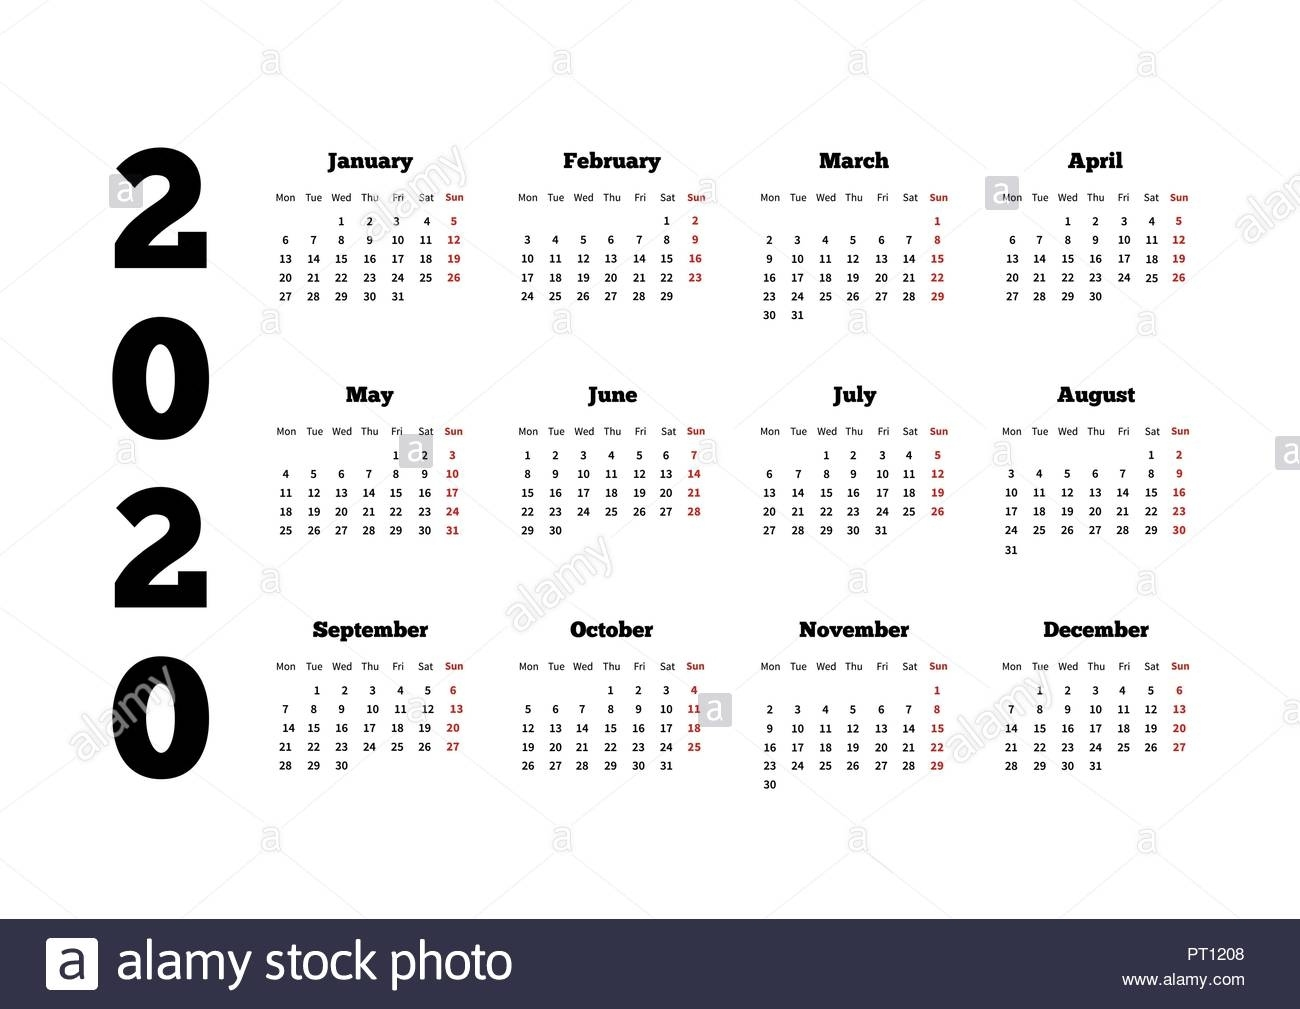 Calendar On 2020 Year With Week Starting From Monday, A4 Sheet Stock Perky 2020 Calendar Starting Monday